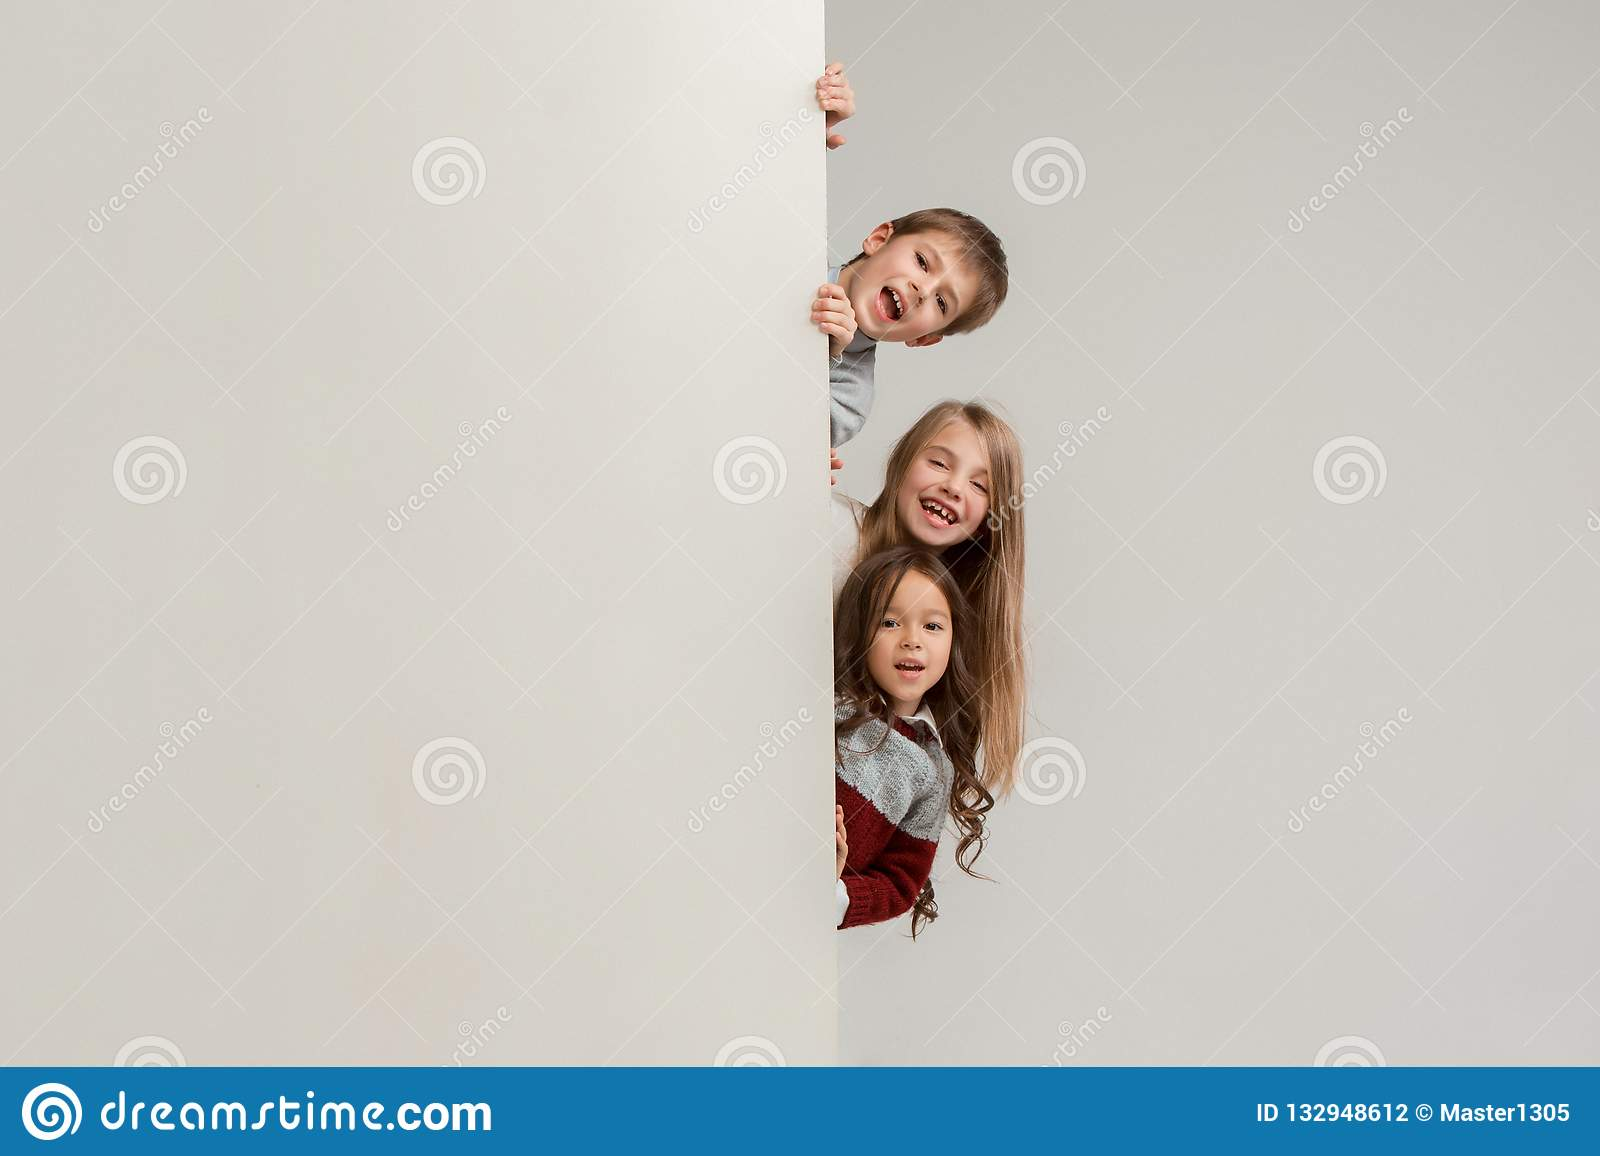 df1e587c0c1 Banner with a surprised children peeking at the edge with copyspace. The  portrait of cute little kids boy and girls looking at camera against white  studio ...